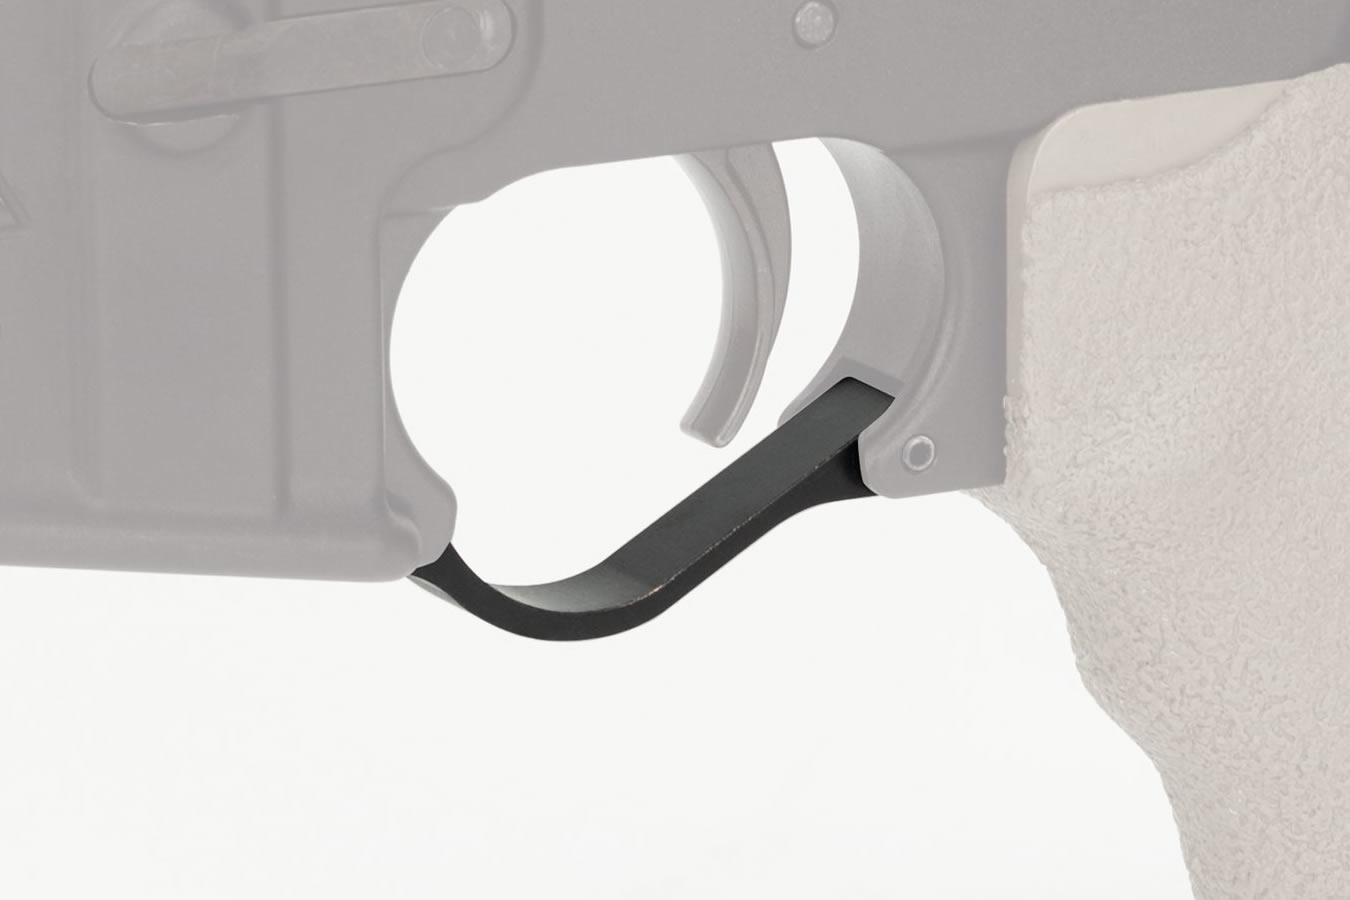 AR-15 OVERSIZED TRIGGER GUARD